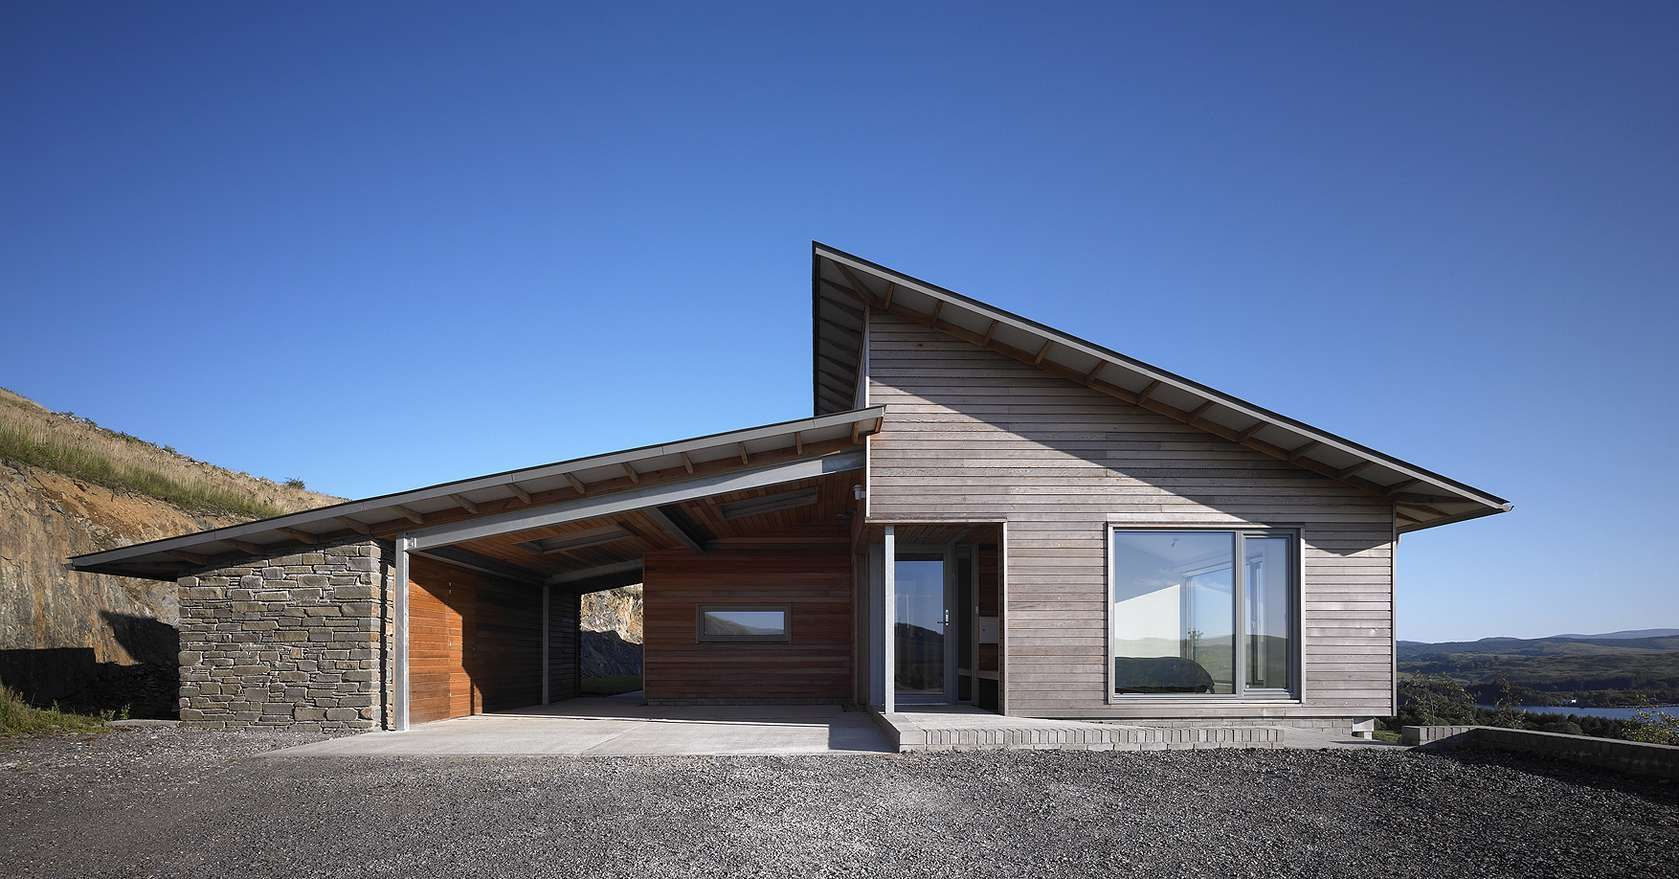 1000+ images about Modern anch Homes on Pinterest - ^